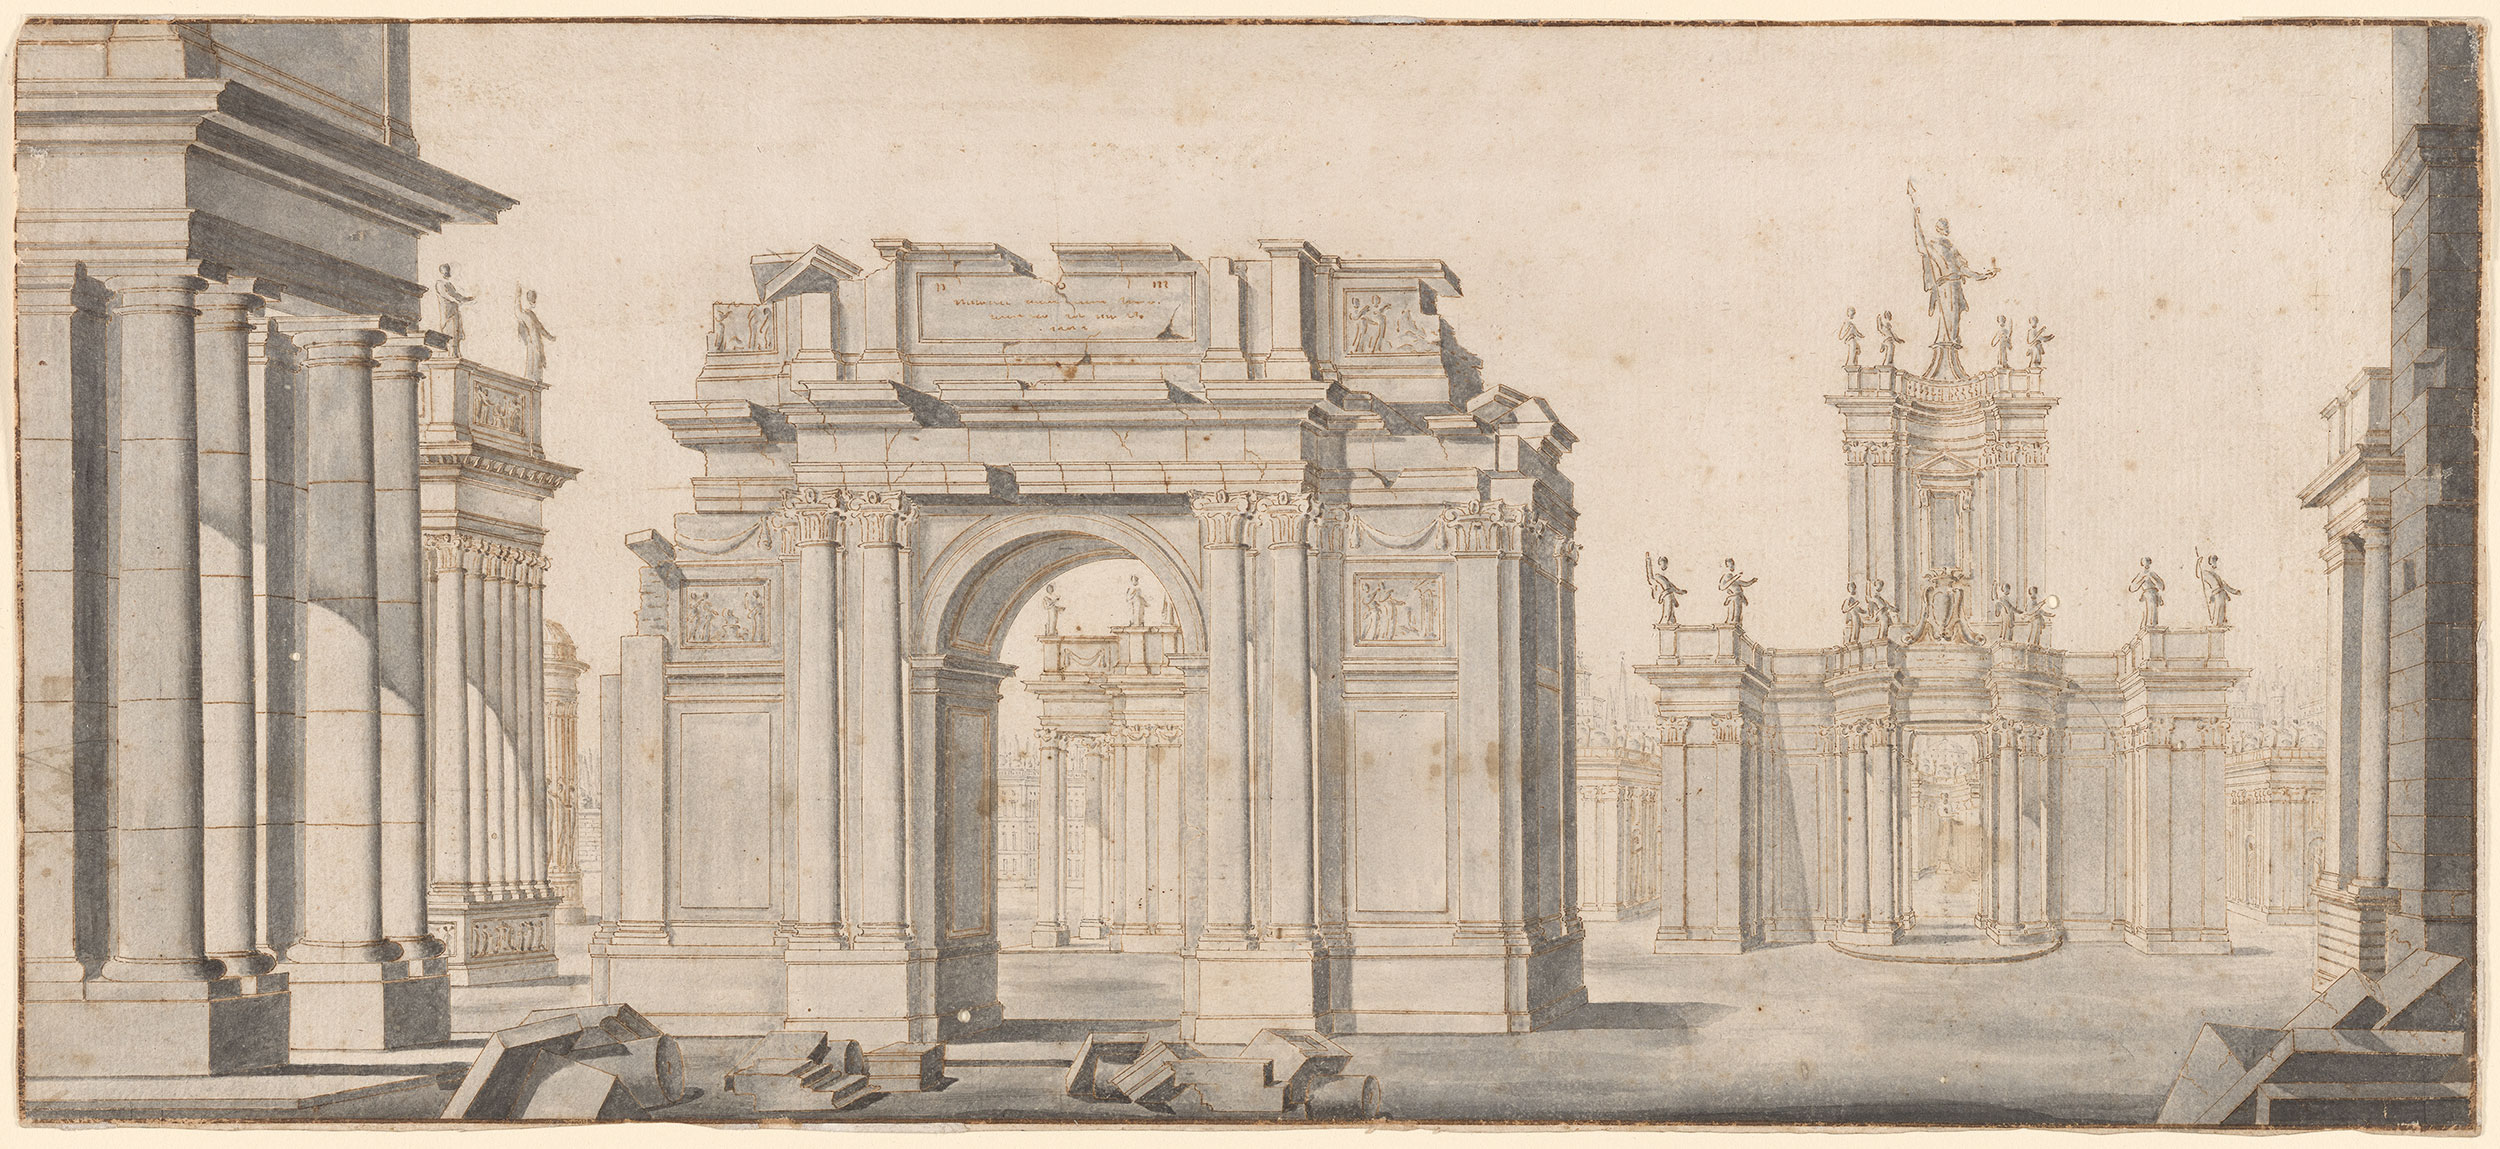 Luigi vanvitelli a classical architectural vista for Architectural drawings online